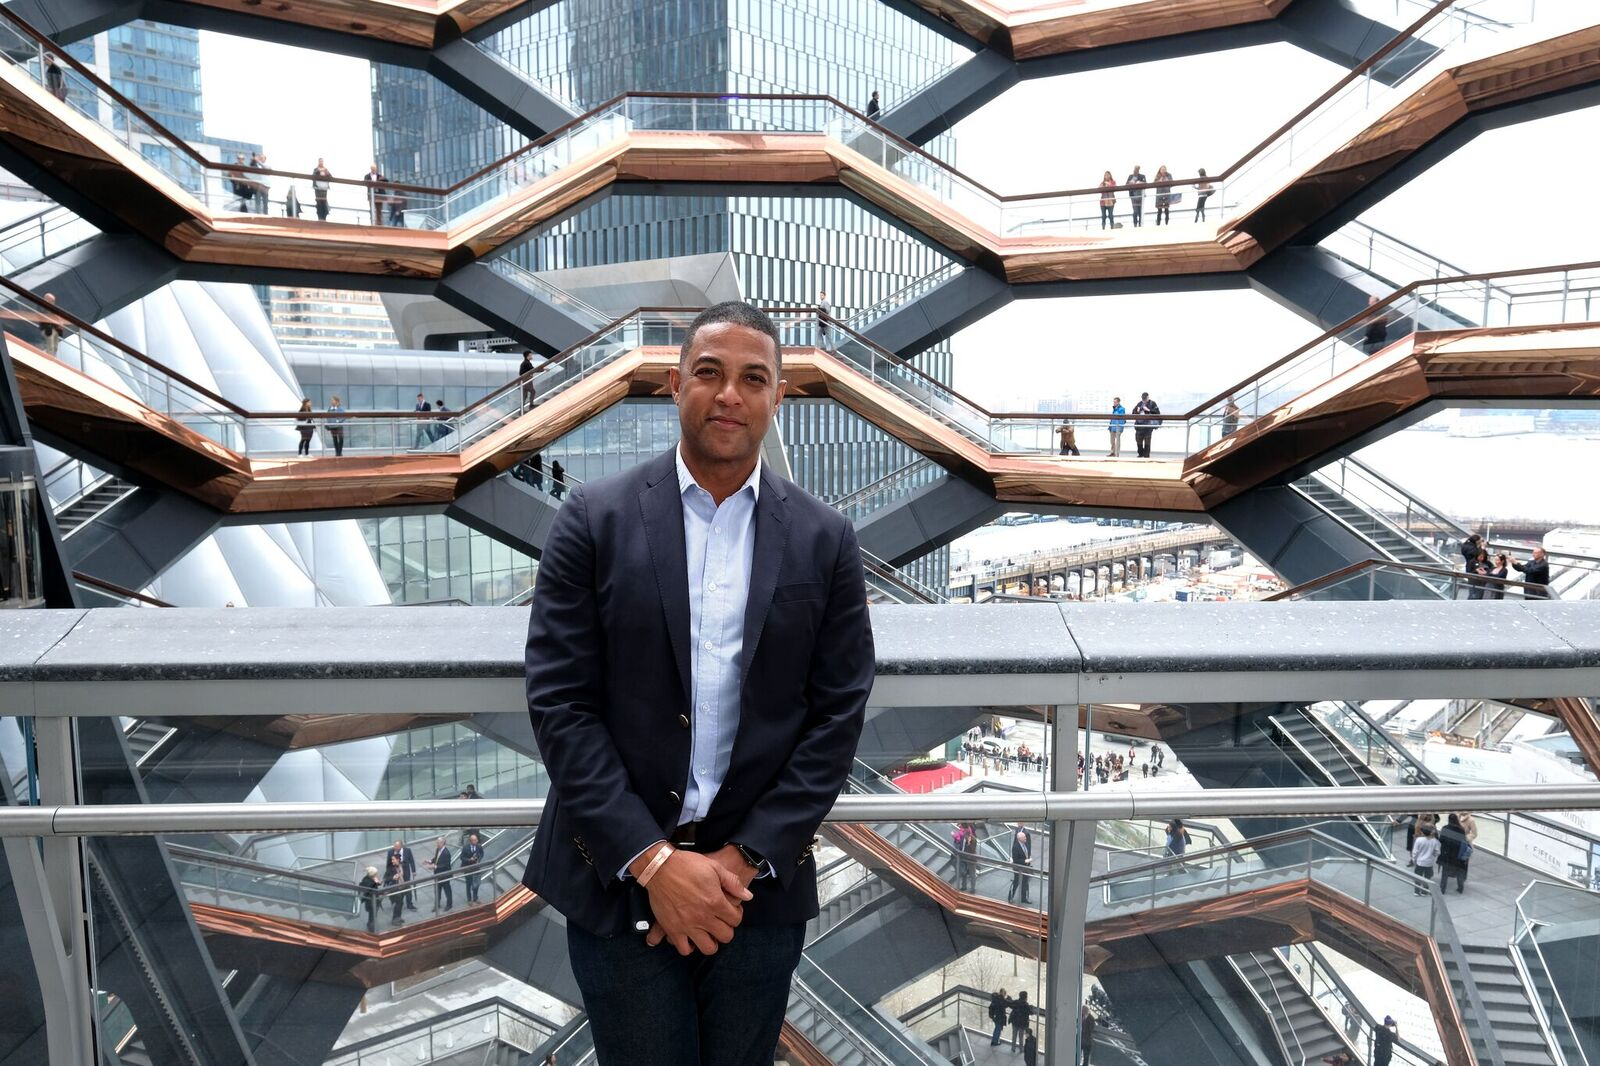 Don Lemon attends Hudson Yards, New York's Newest Neighborhood, Official Opening Event on March 15, 2019 | Photo: Getty Images